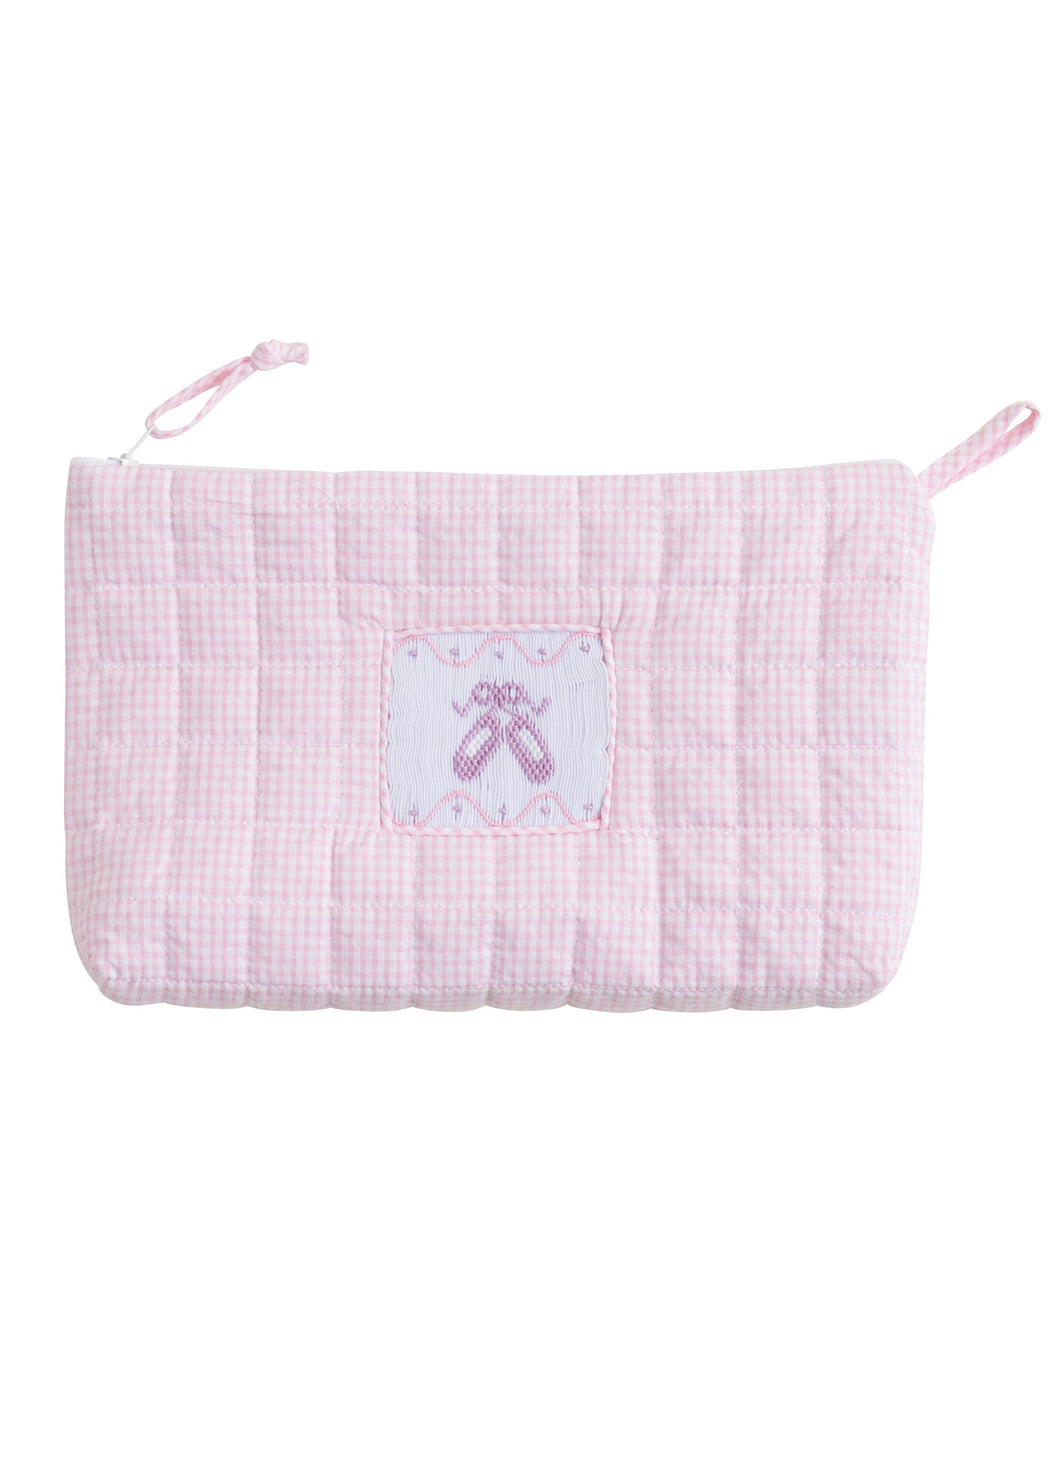 Quilted Cosmetic Bag - Ballet